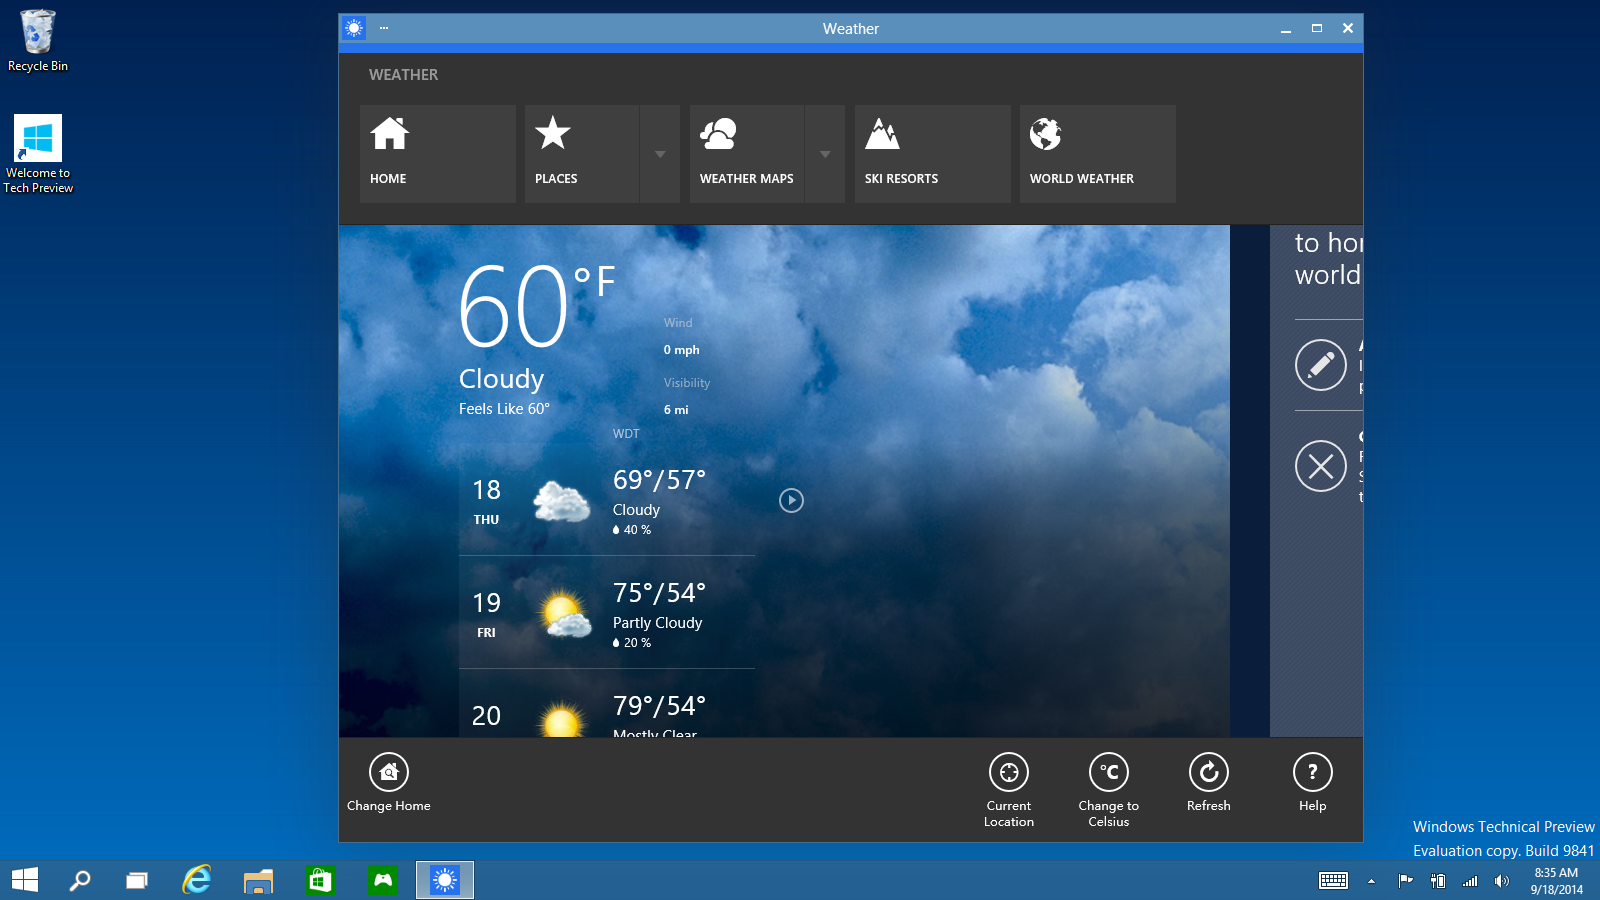 App Commands - Microsoft Unveils Windows 10 with Major Improvements [Download Link Here]